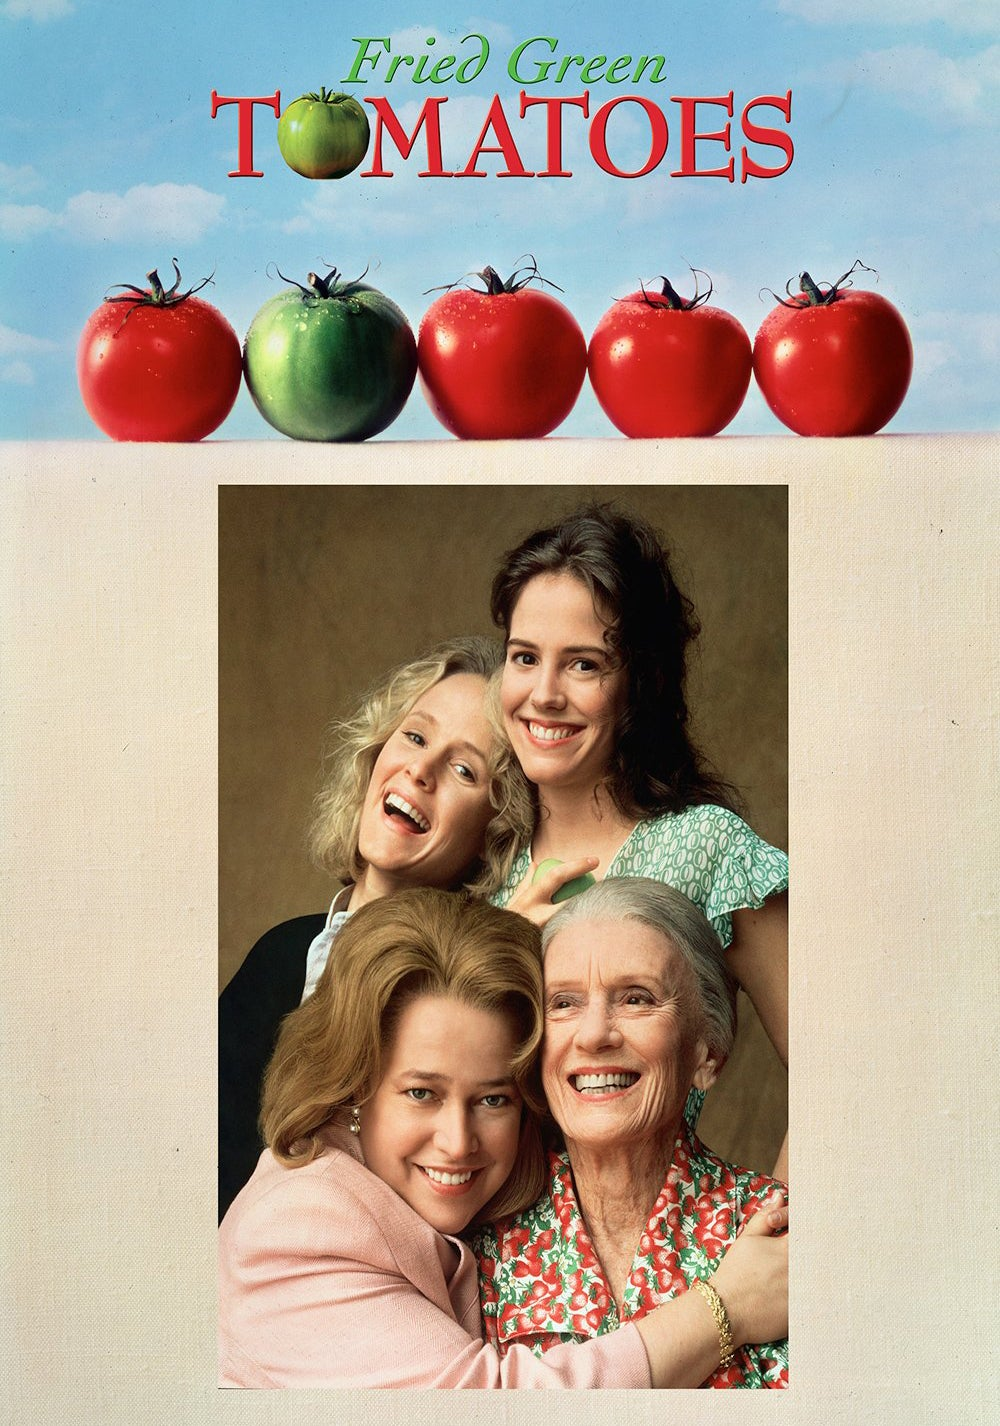 Fried Green Tomatoes Golden Globes